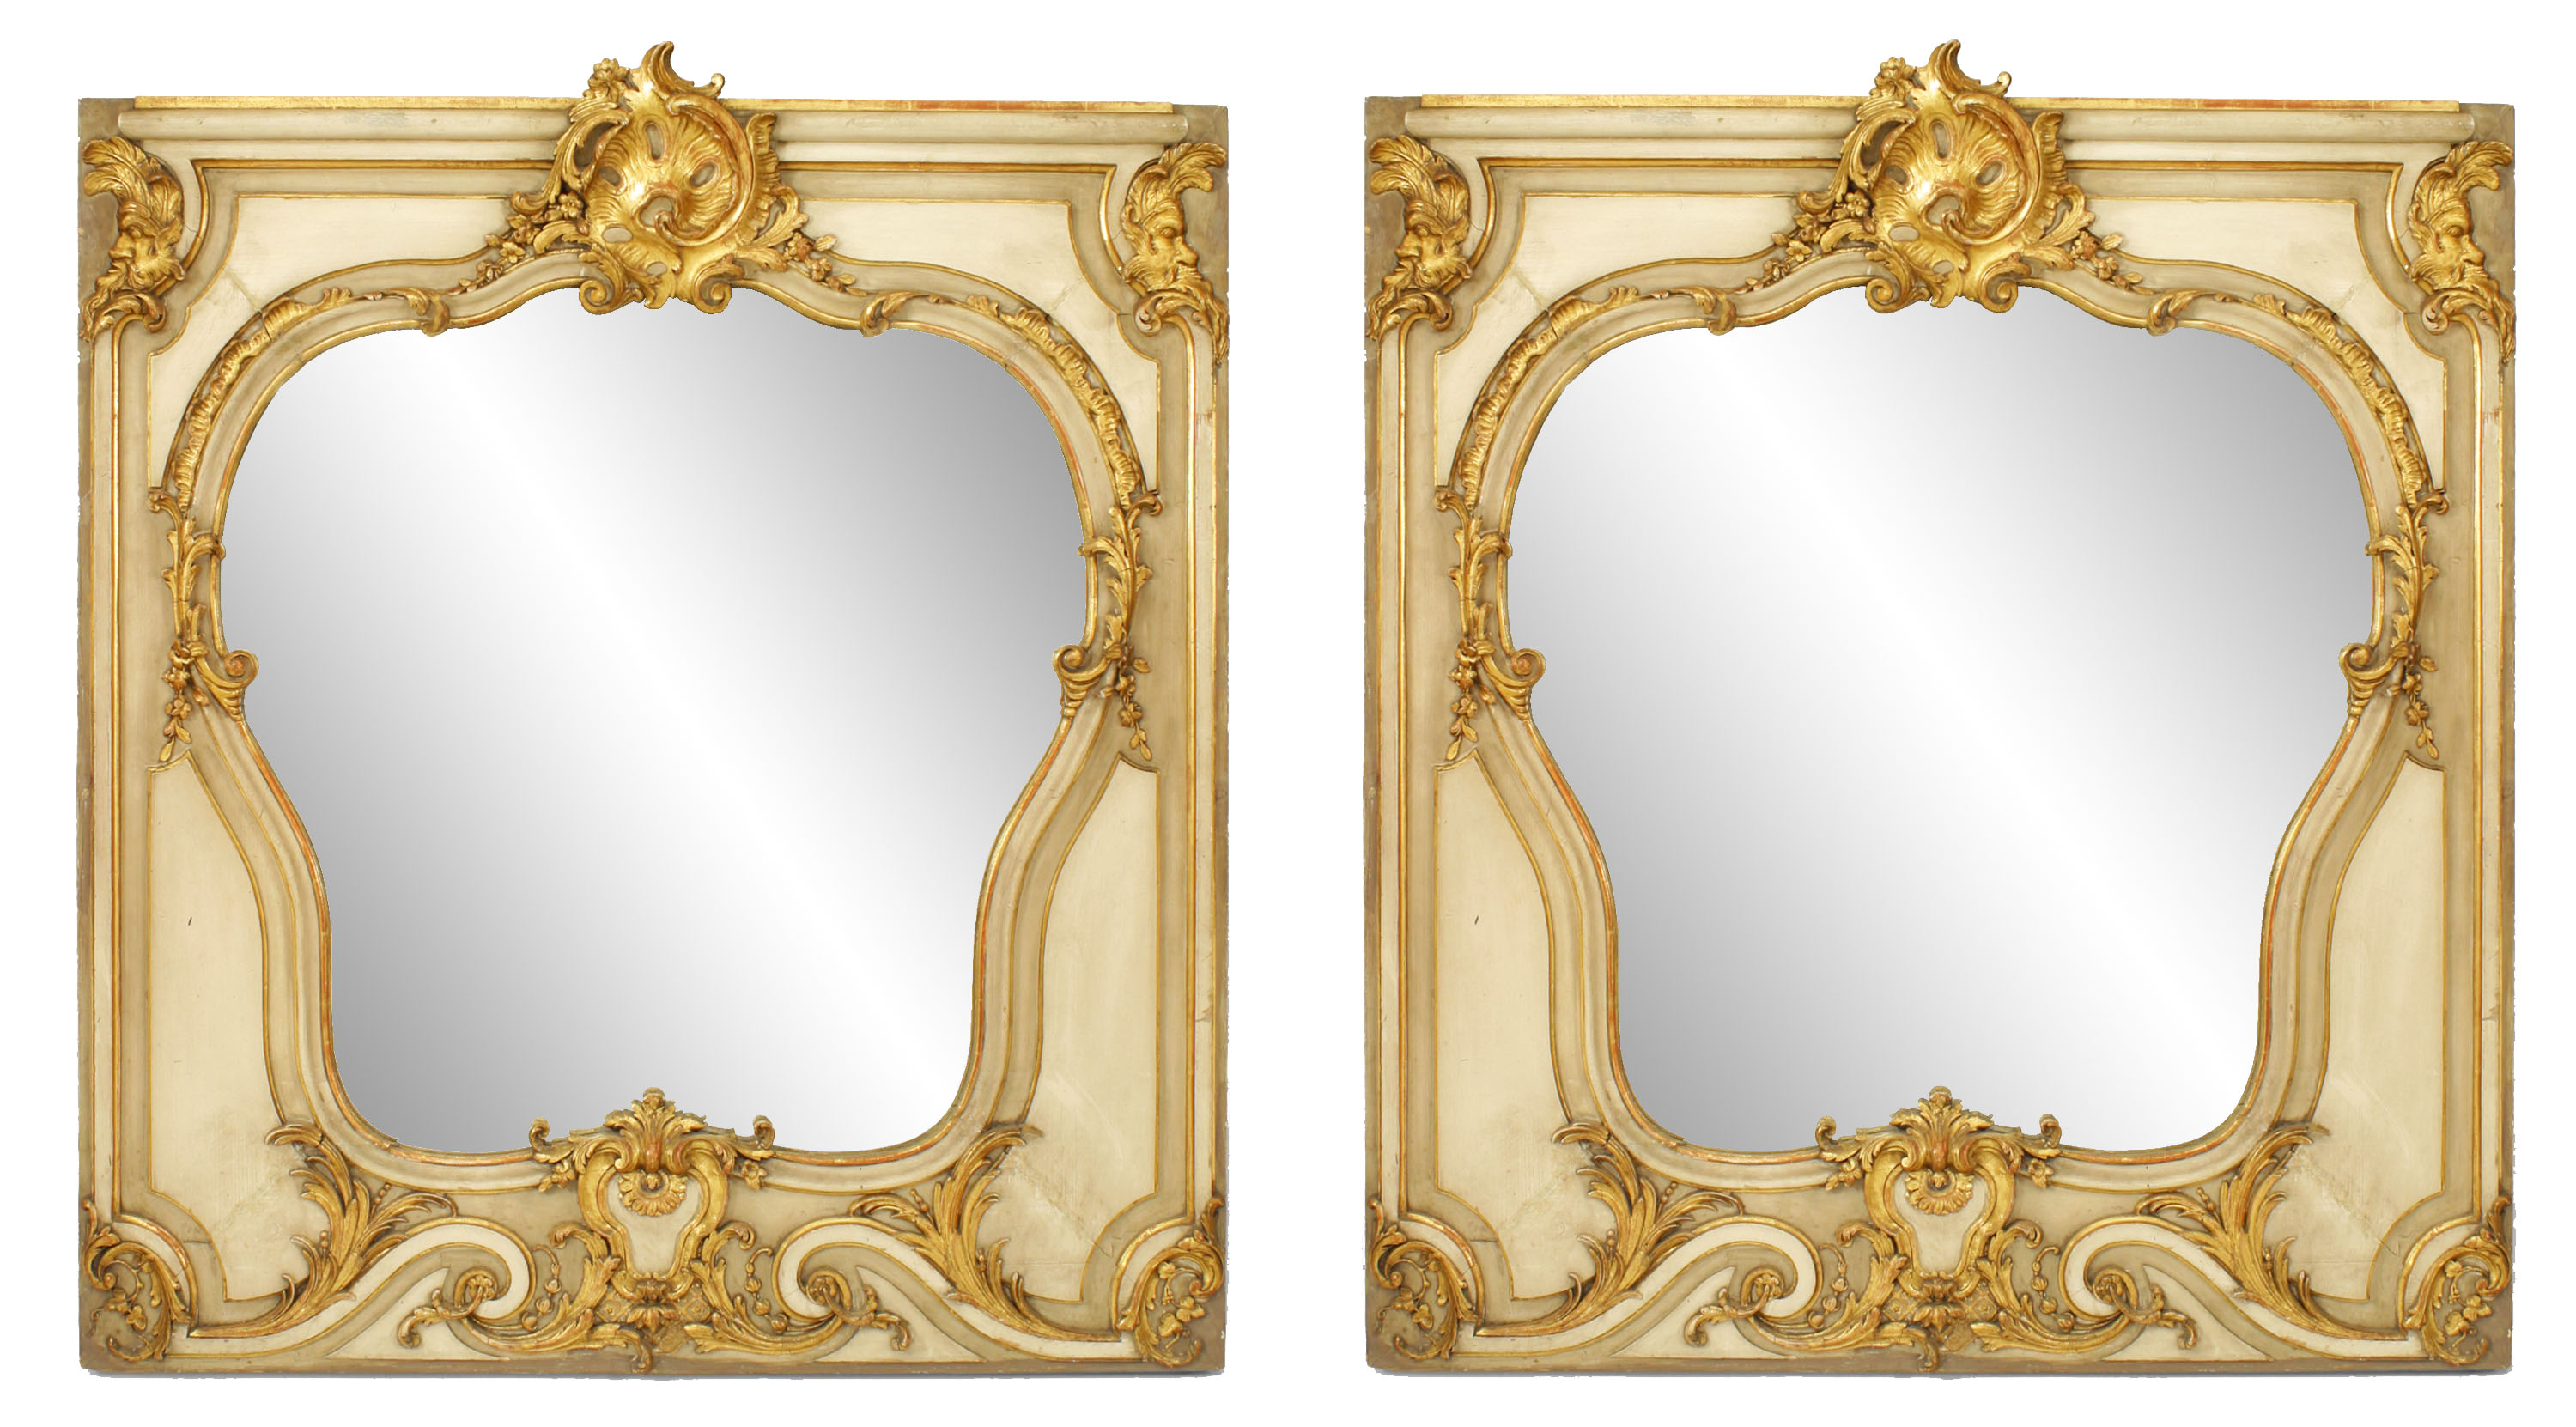 2019 French Louis Xv Style Gilt And Beige Painted Wall Mirrors Within Painted Wall Mirrors (View 2 of 20)